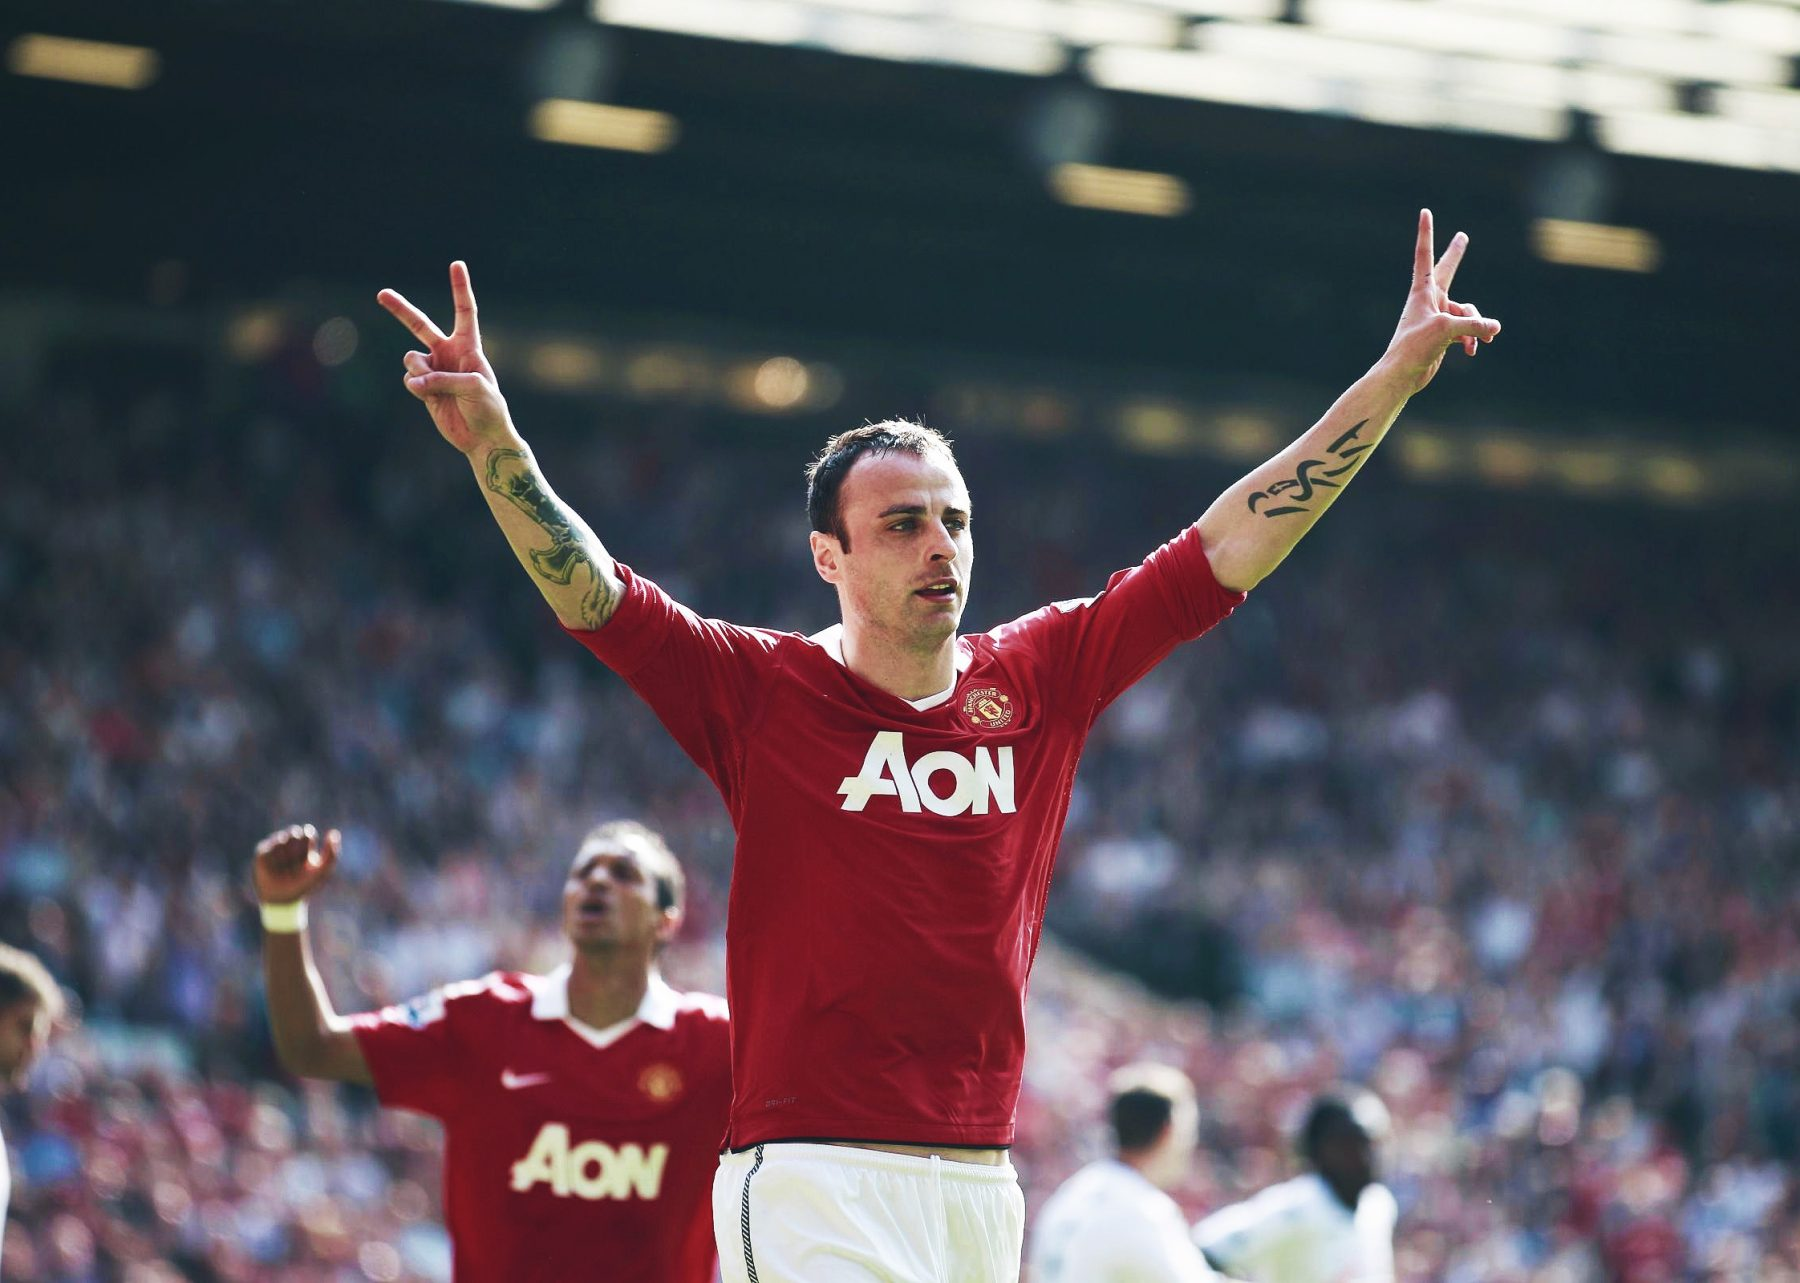 Dimitar Berbatov and the golden touch of perfection